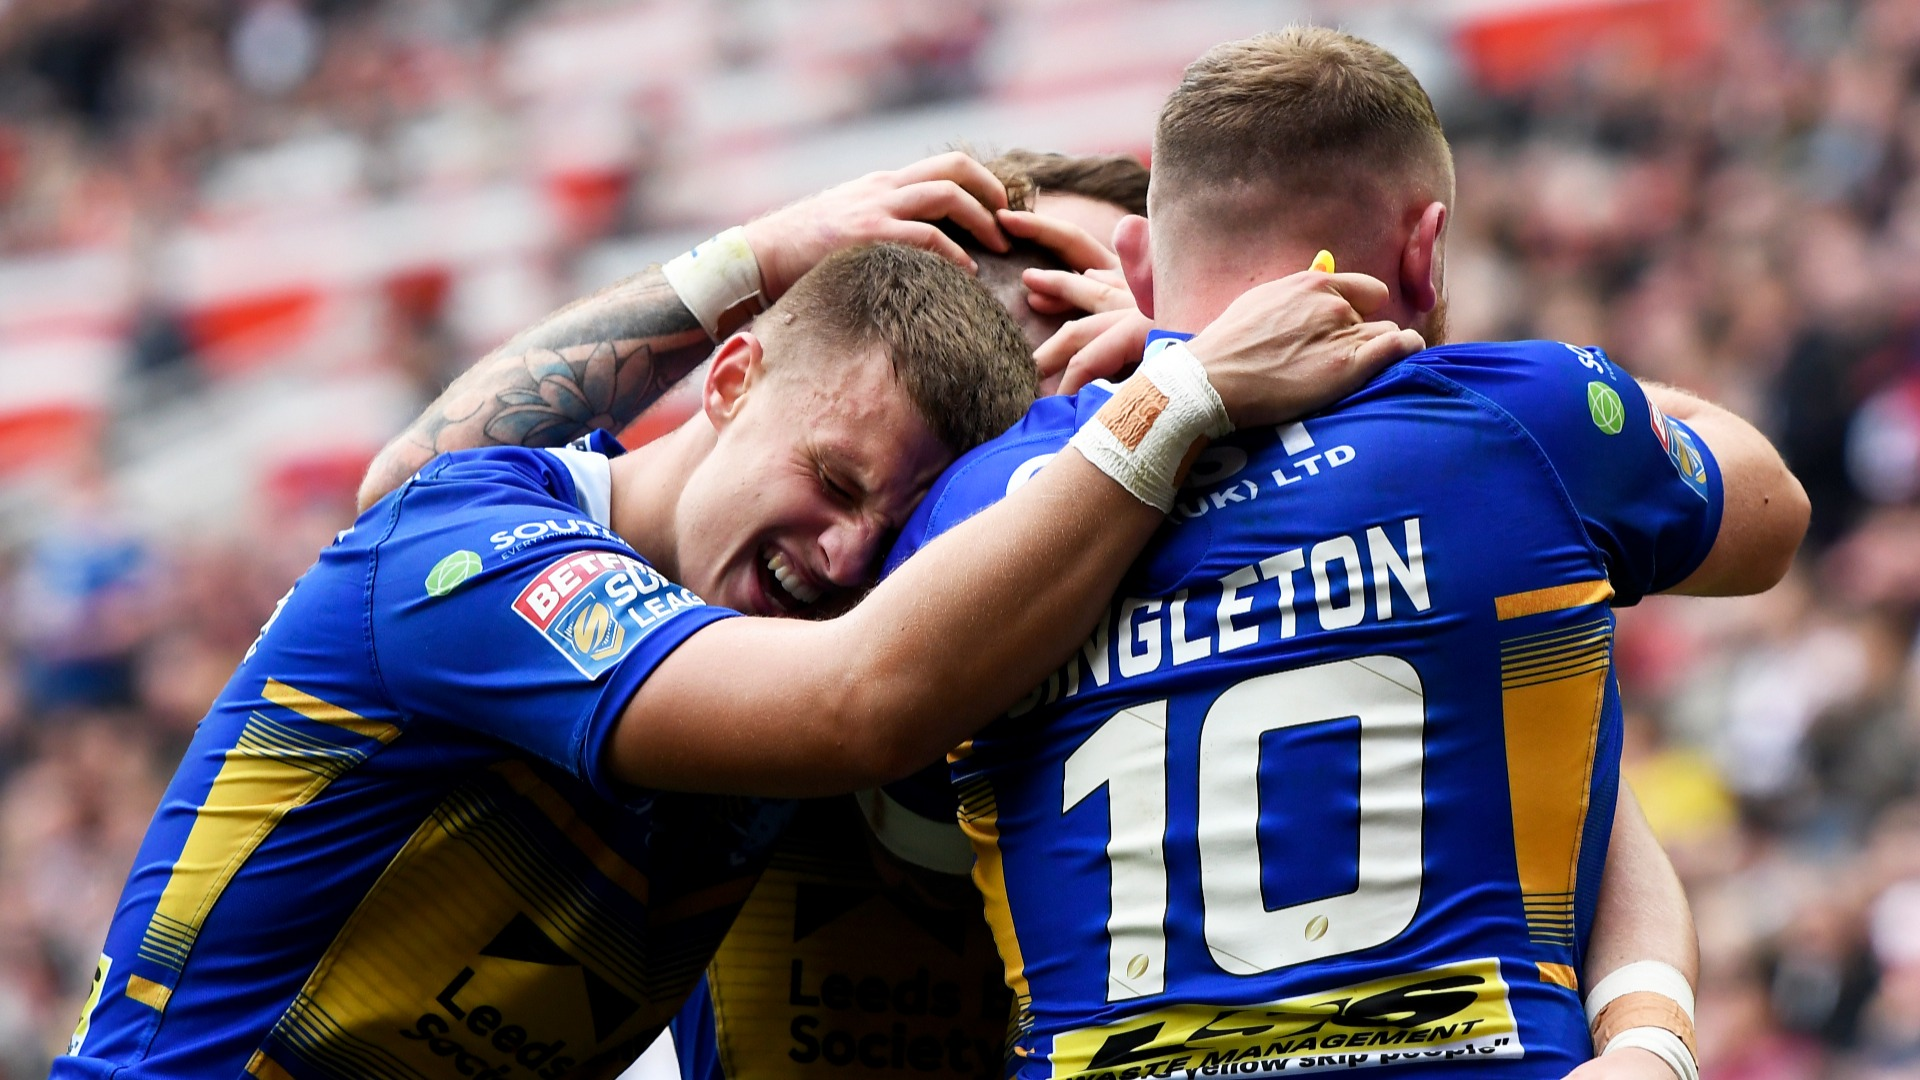 Hurrell and Handley doubles see Leeds rout Huddersfield